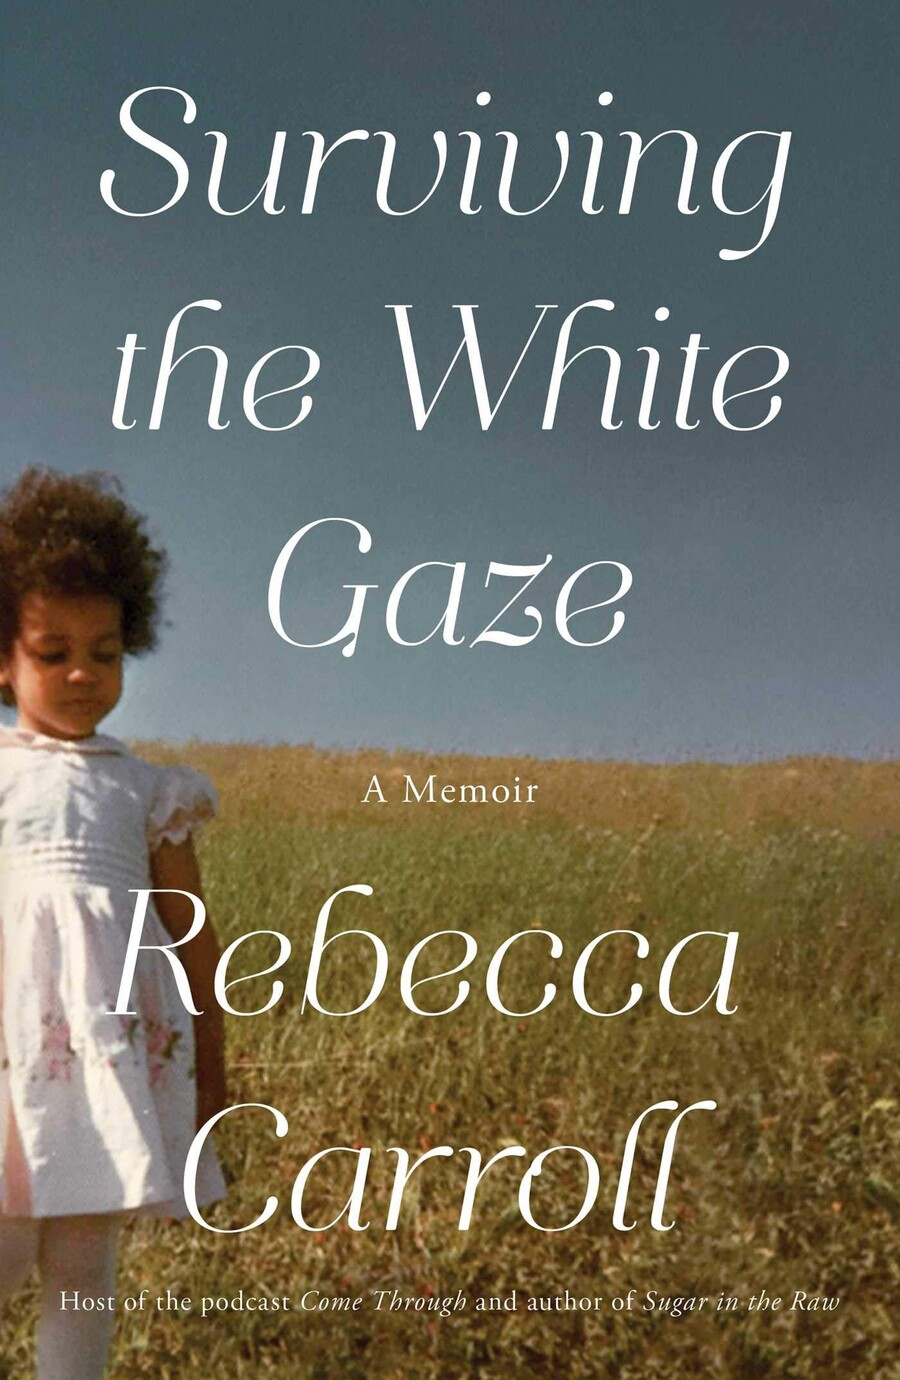 Surviving the White Gaze is a book cover featuring a photo of a small, light-skinned child walking through a field in a white dress